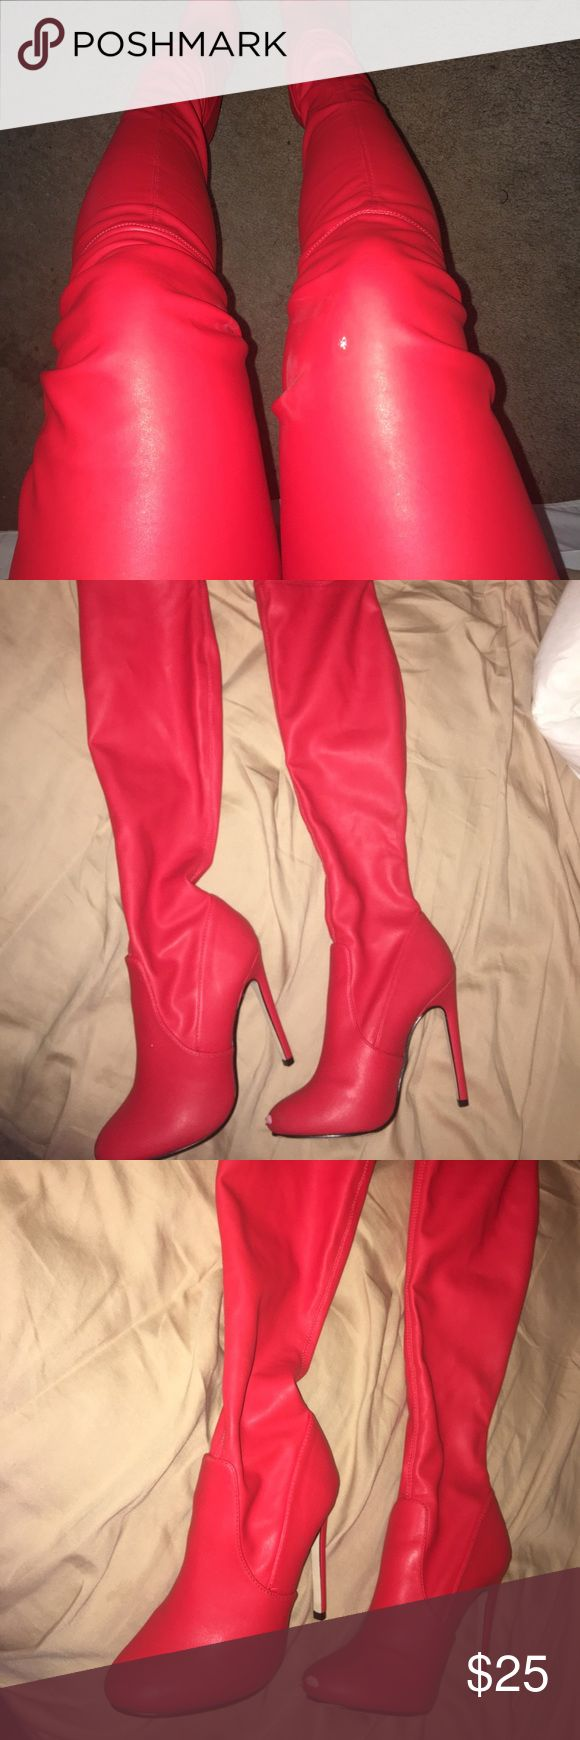 Misguided red thigh high motor boots Get the look!!! With these fire red thigh high motor boots. These shoes are a guaranteed look and will definitely have all eyes on you. (Worn a few times and scuffed at the tip on one of the shoes) Missguided Shoes Over the Knee Boots